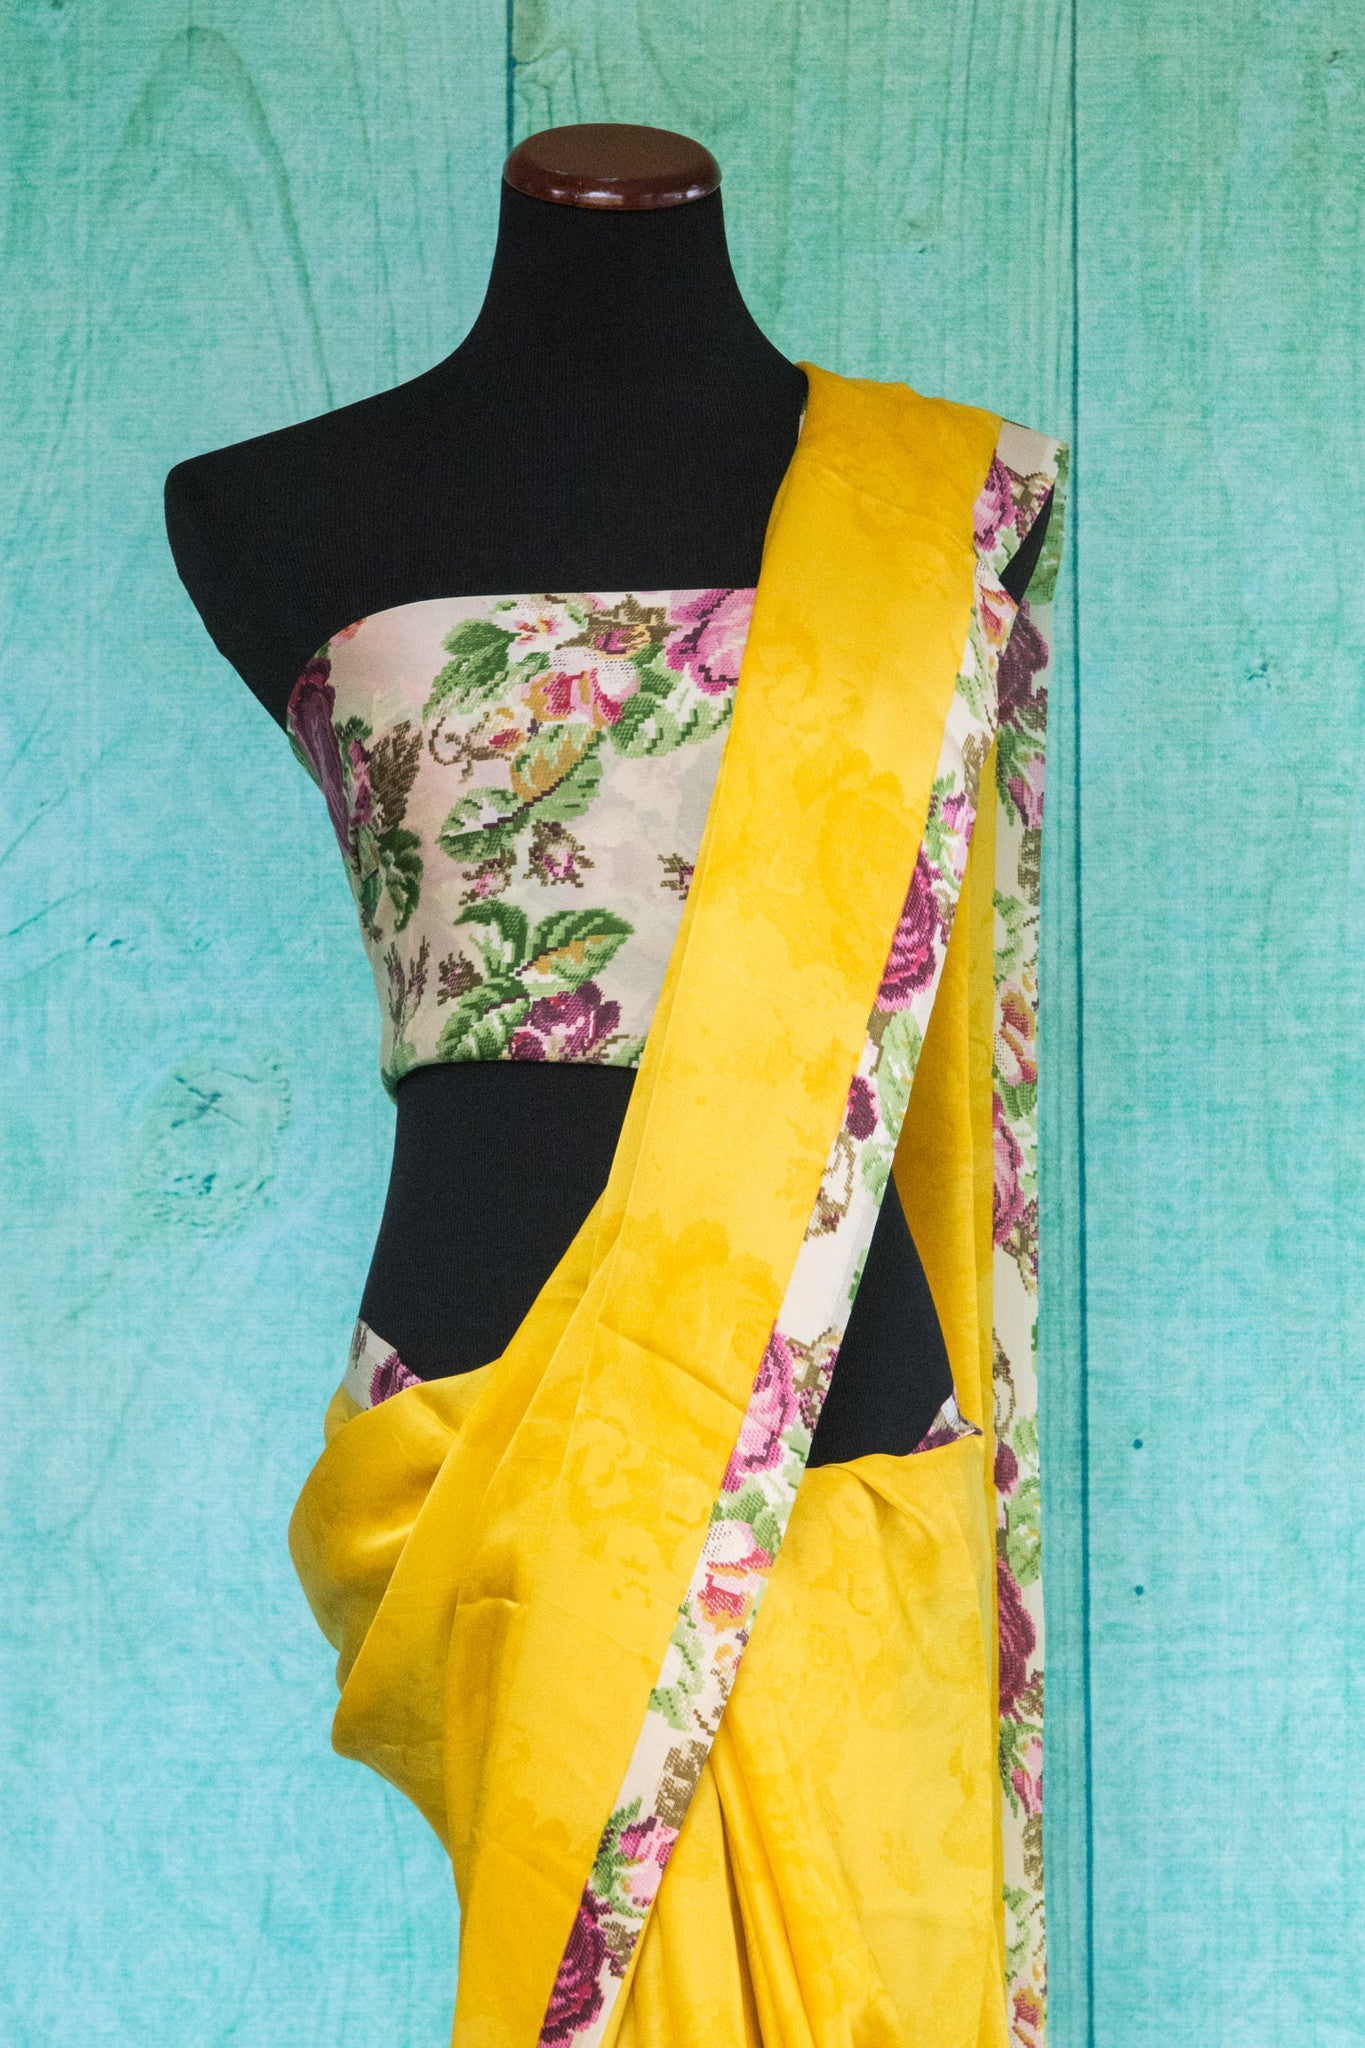 90c092 Yellow saree with a multi colored floral blouse and border trim ideal for festivities. Buy this satin crepe plain saree online in USA at our Indian fashion store Pure Elegance